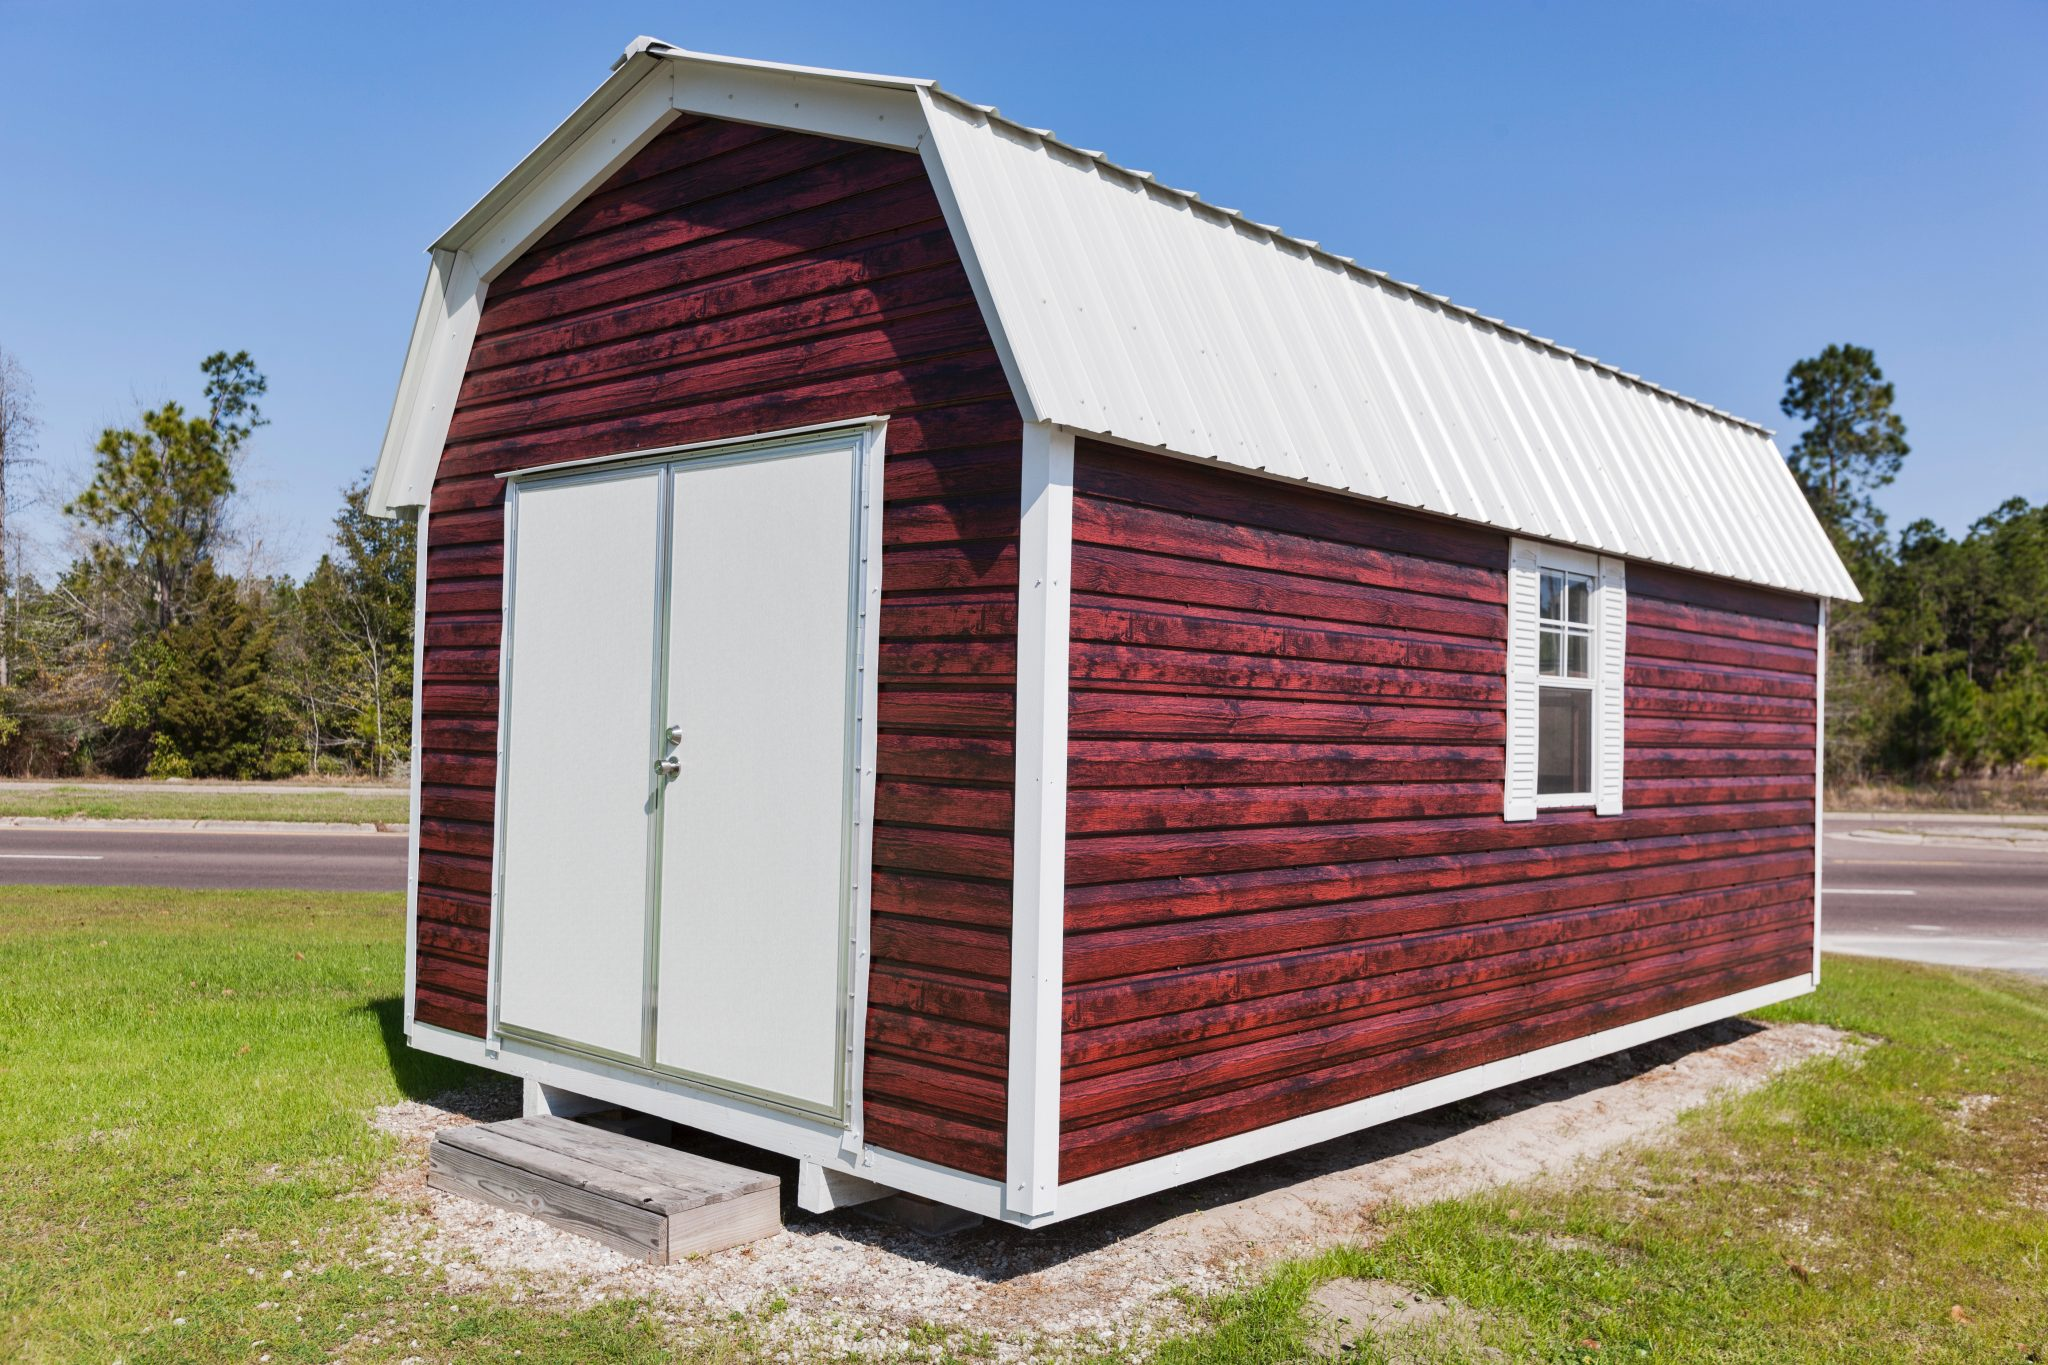 home facebook media s shed portable sheds yodersportablesheds id yoder